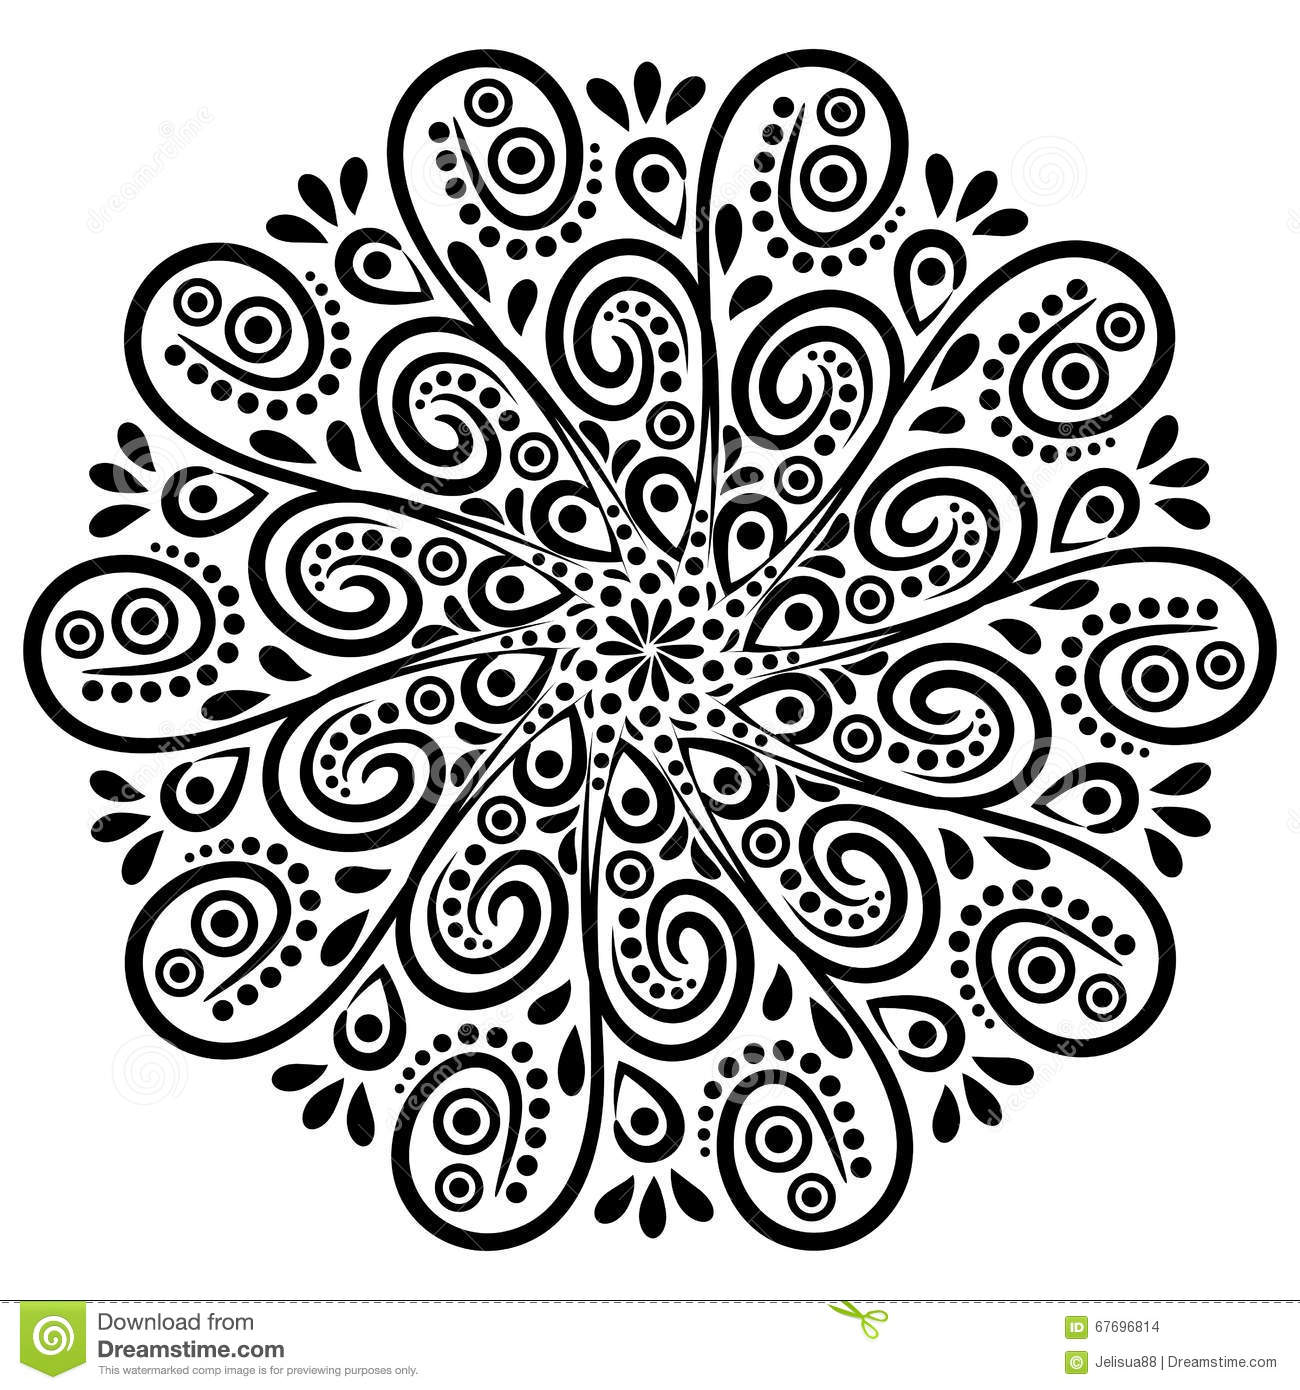 Mystical mandala coloring pages - Indian Mandala Coloring Pages 2